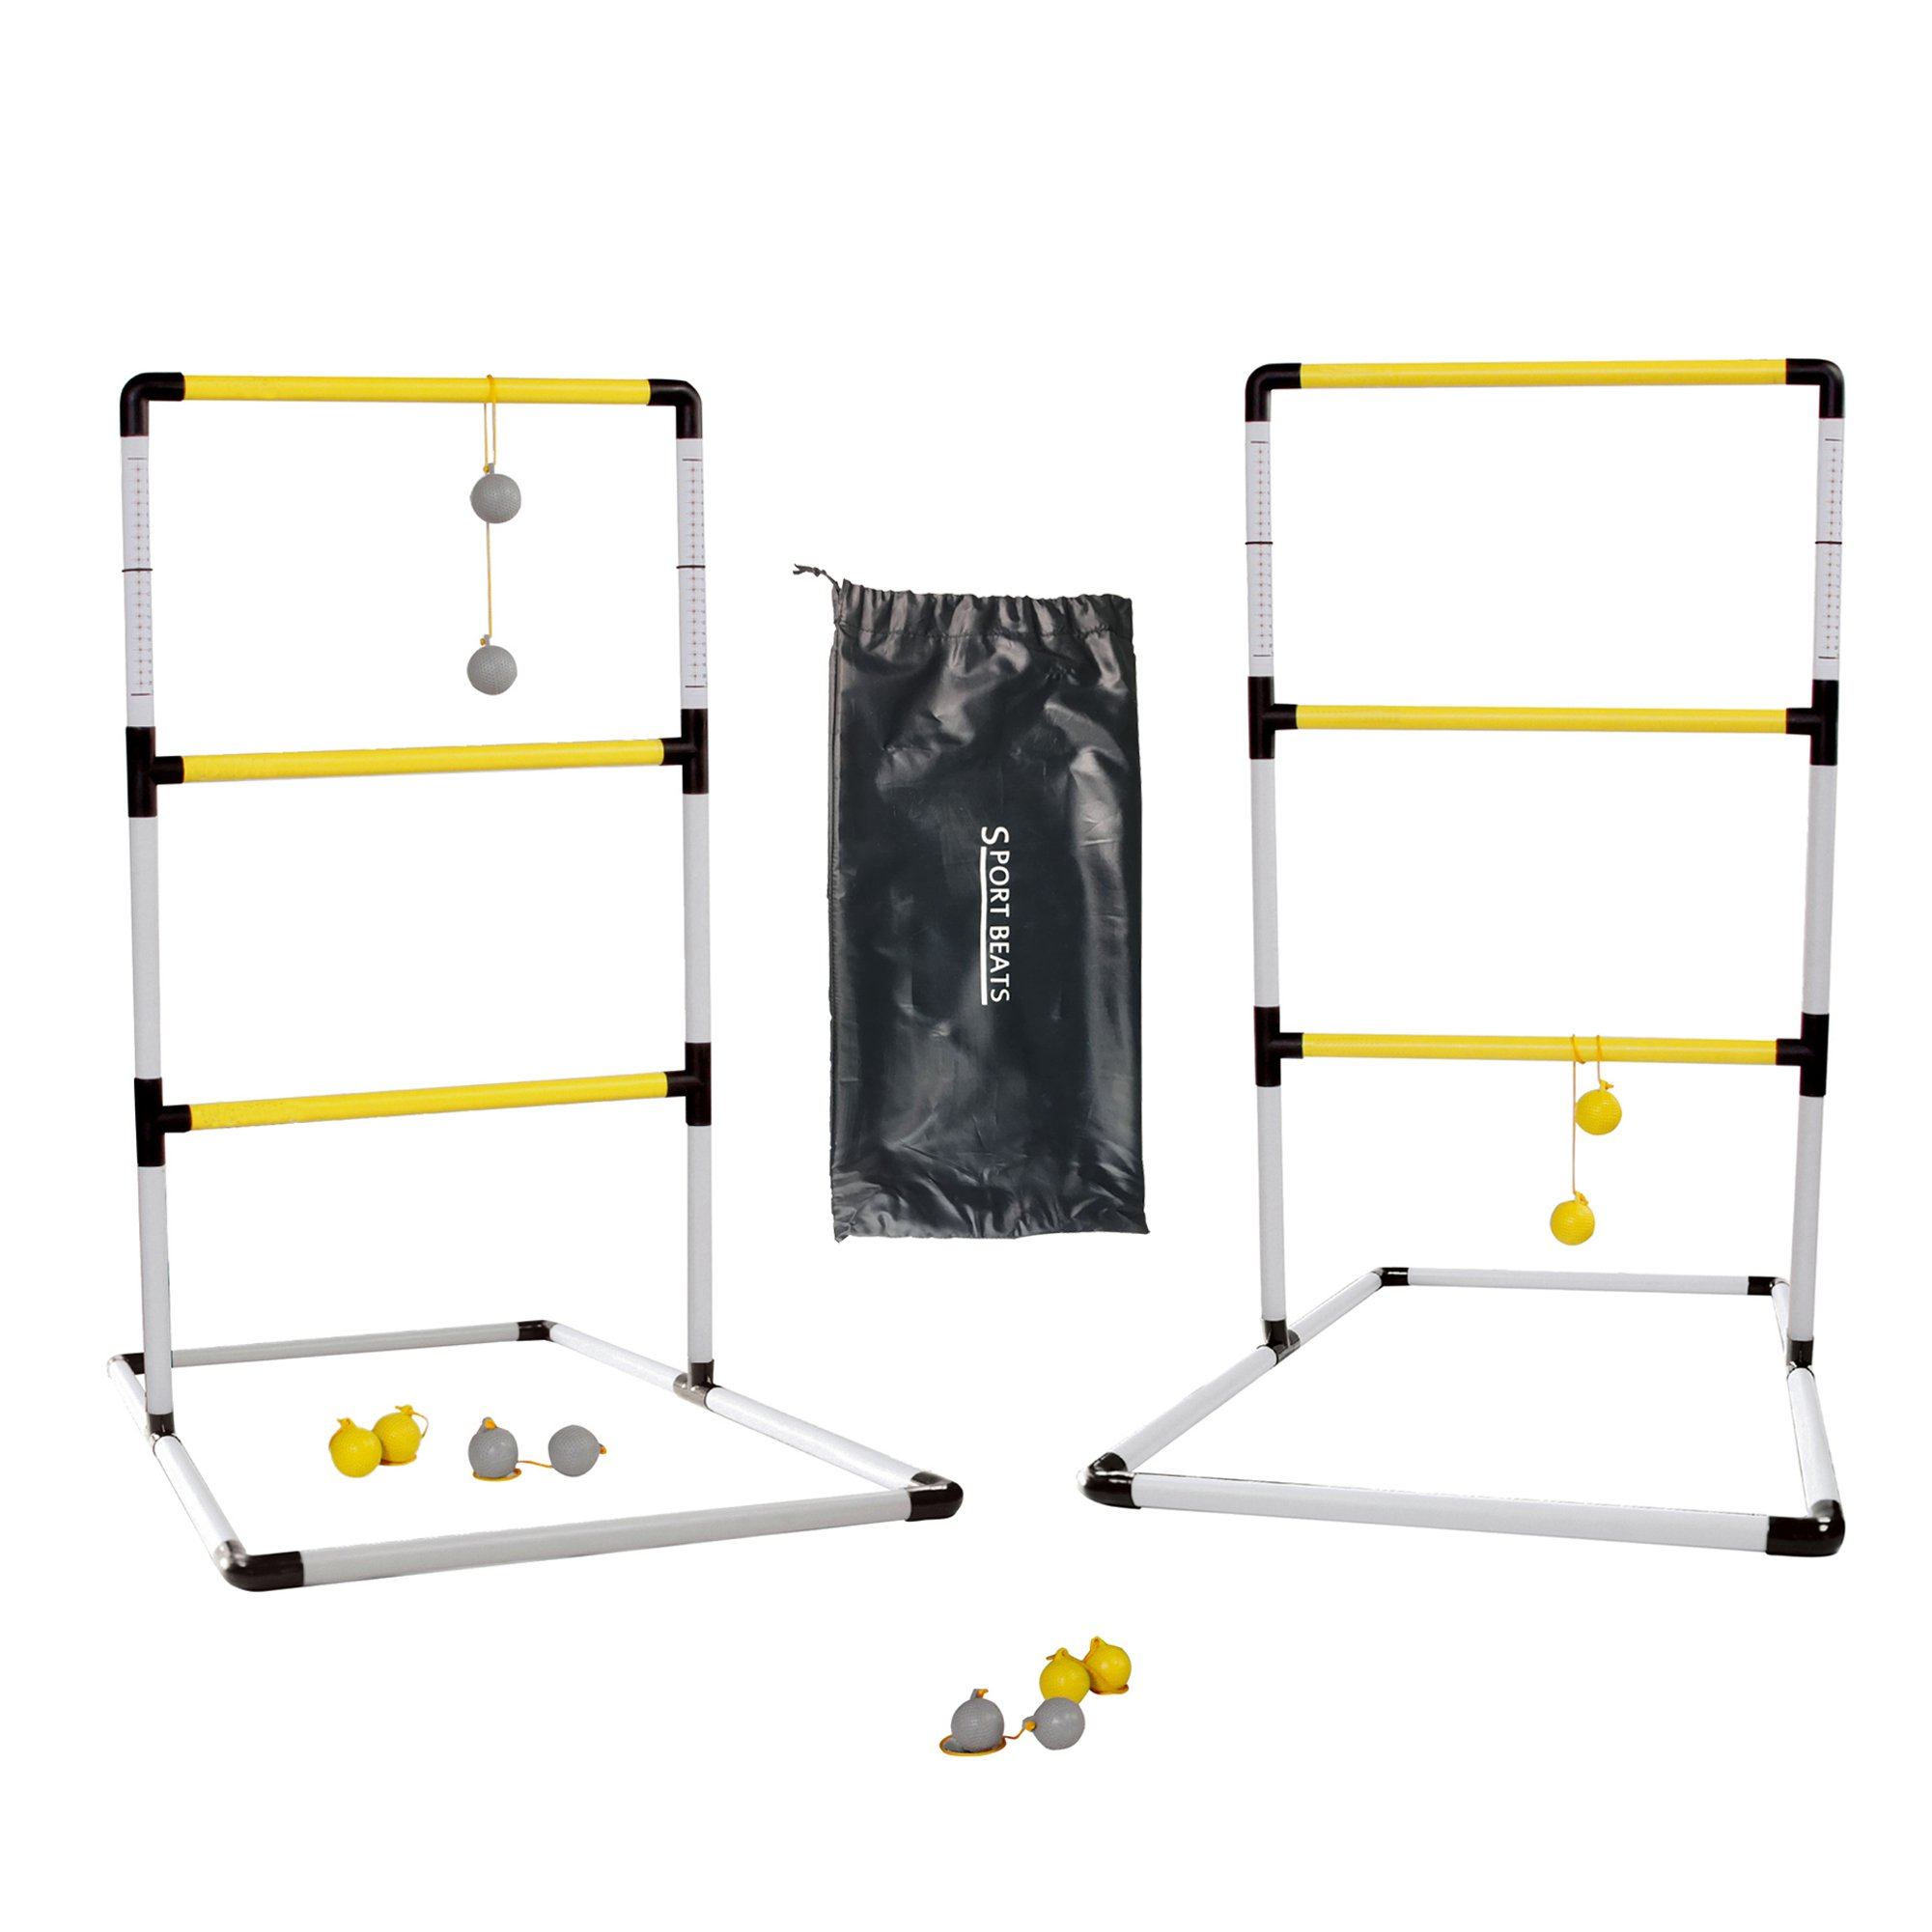 SPORT BEATS Ladder Ball Games Set with Carrying Case, Premium Ladder Toss for Indoor/Outdoor